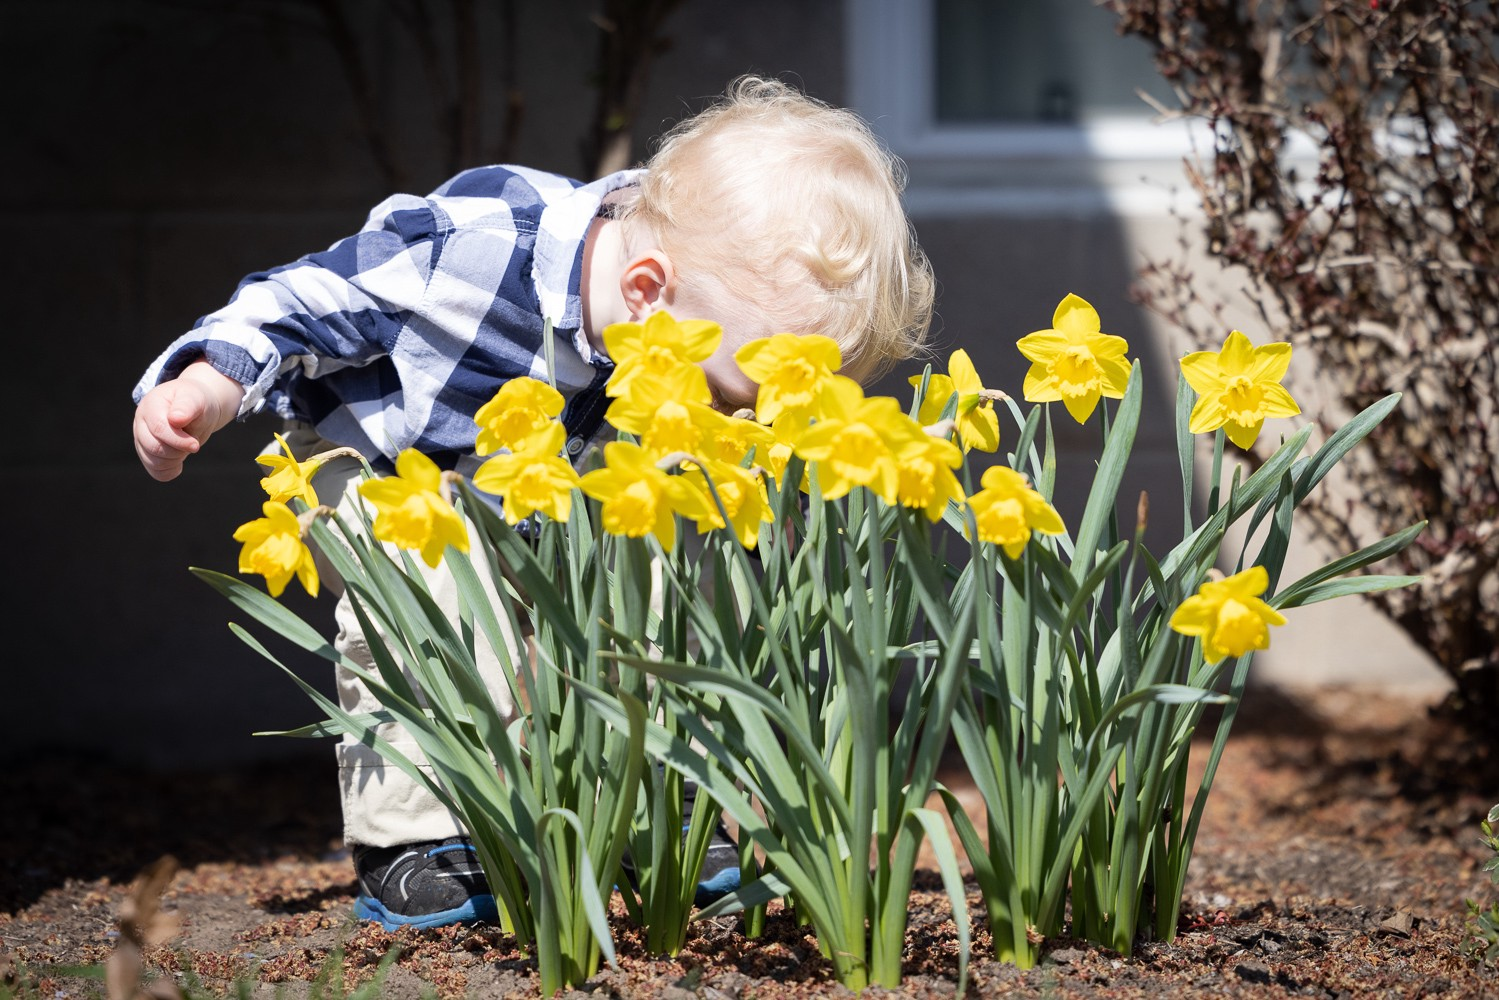 small child bent over smelling daffodils